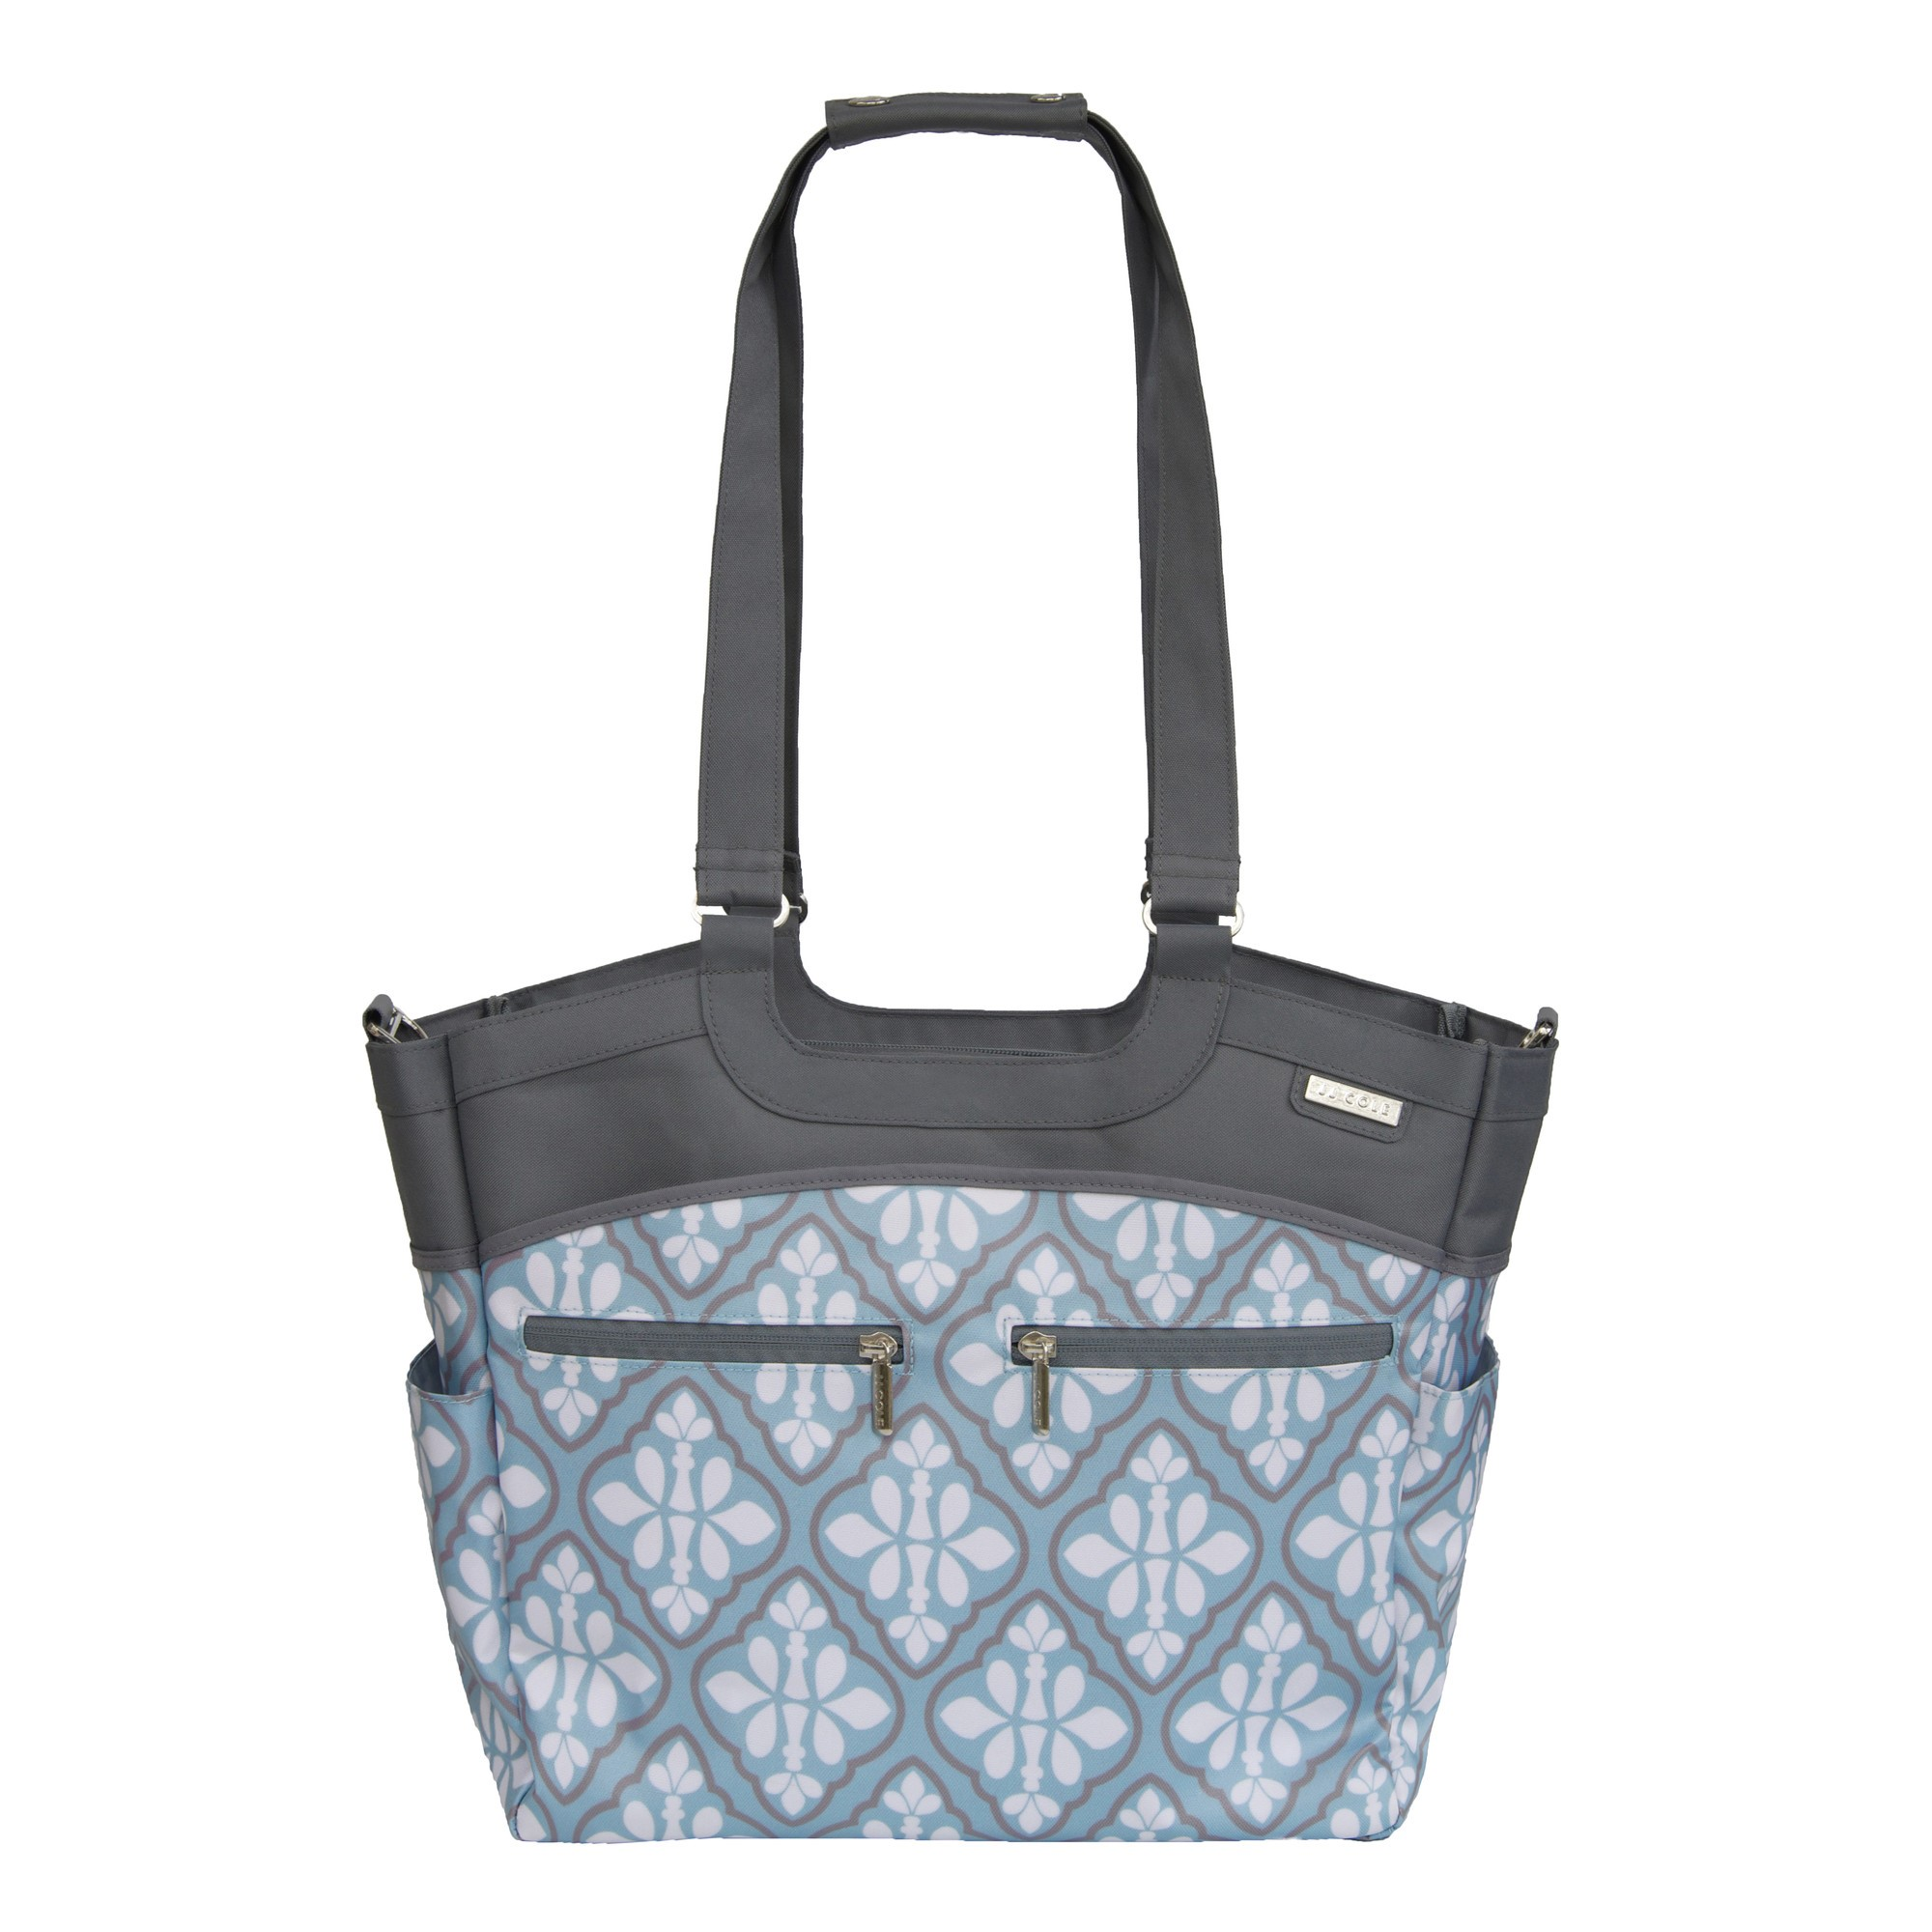 JJ COLE Camber Diaper Bag - Blue Iris